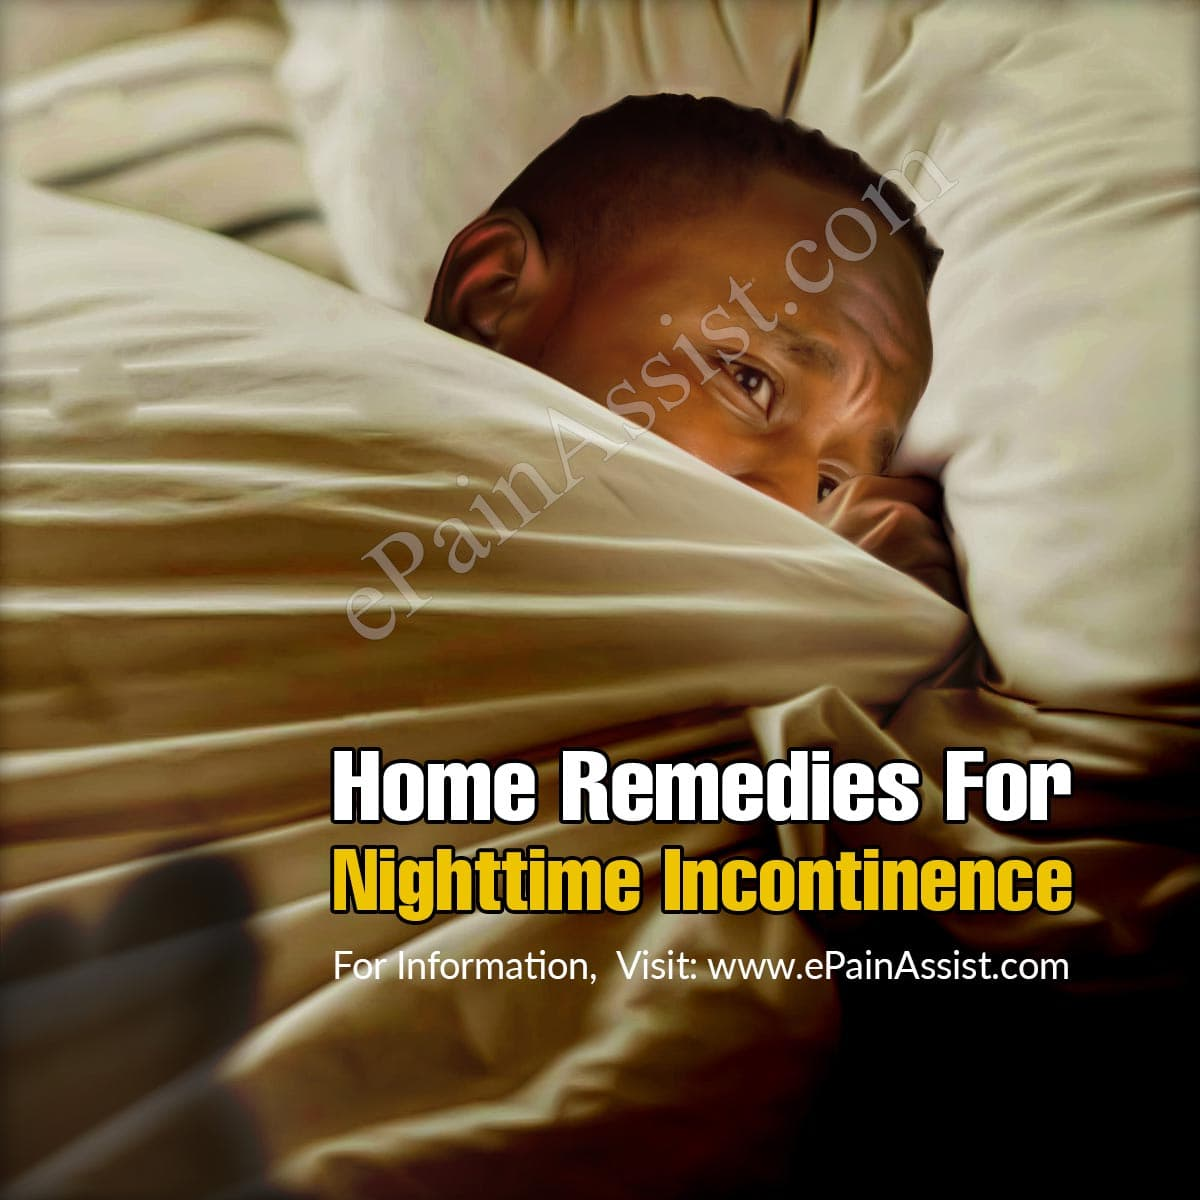 Home Remedies For Nighttime Incontinence